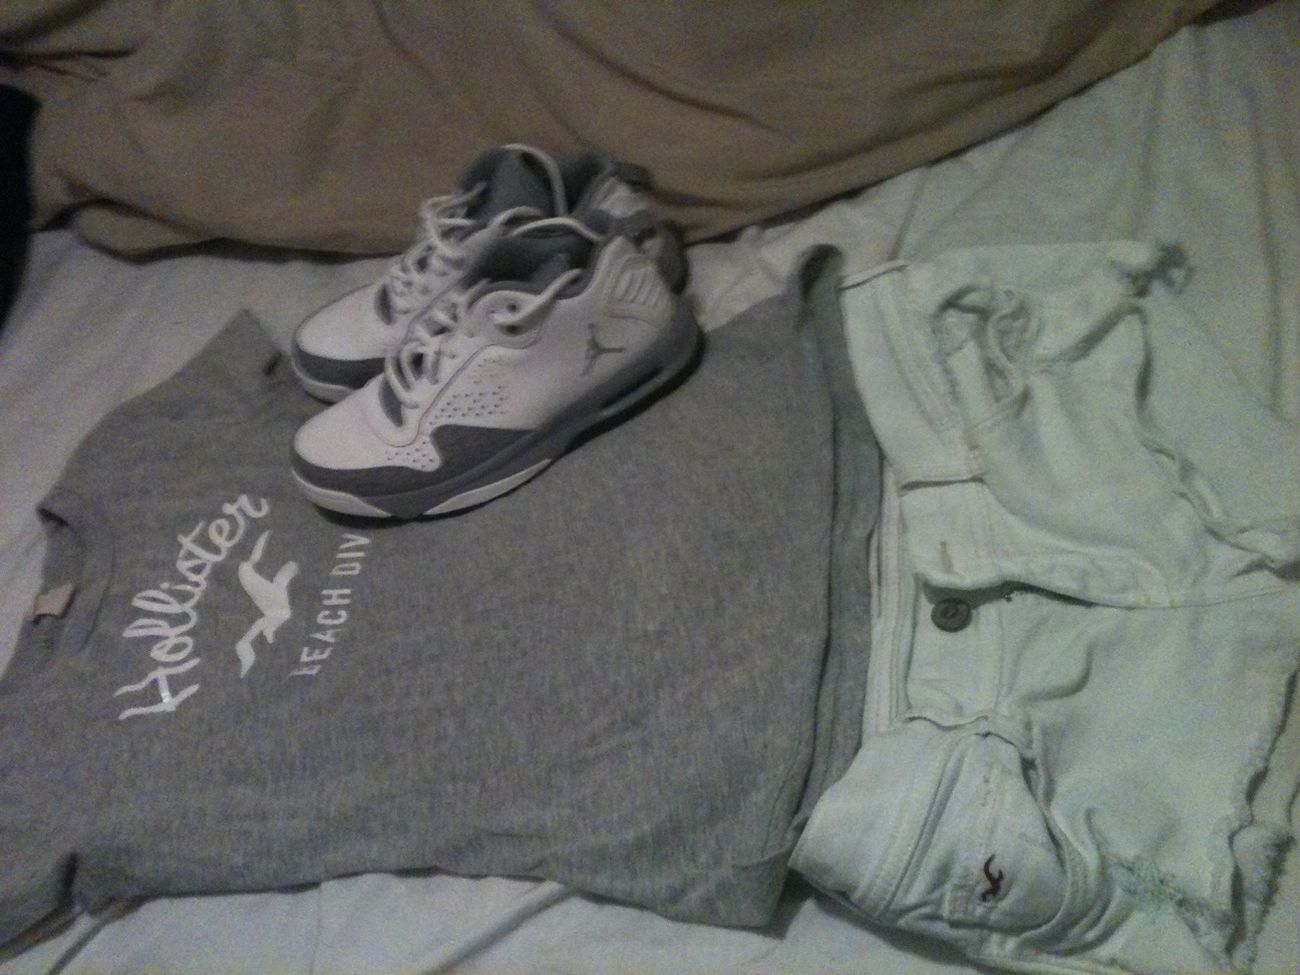 When summer comes this is my first day outfit ,( ;